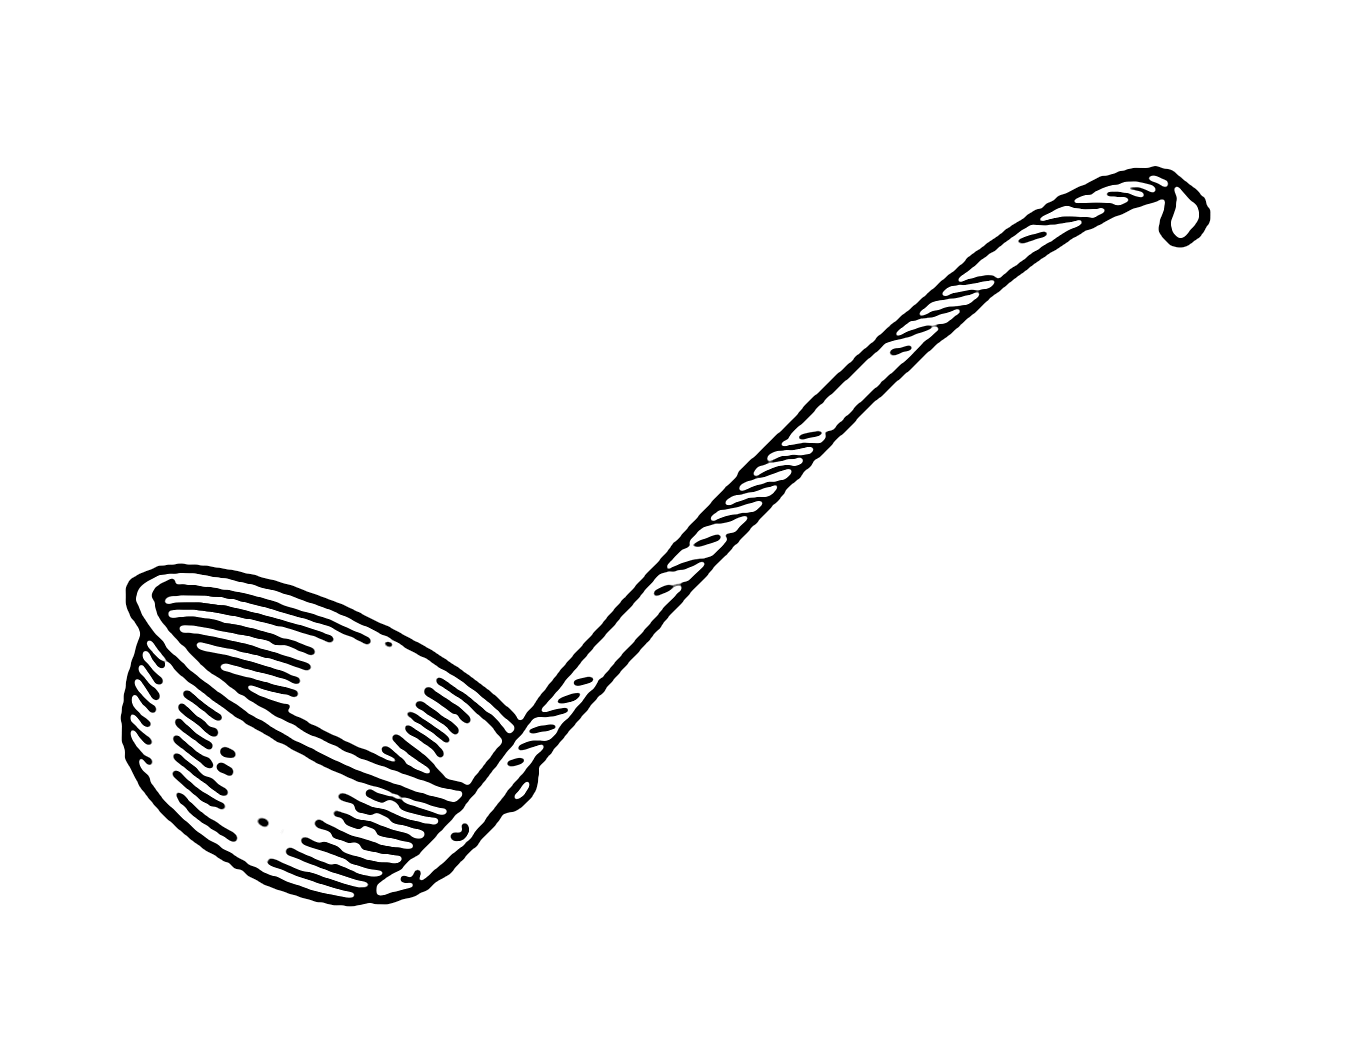 Line Art Wikipedia : File dipper psf wikimedia commons